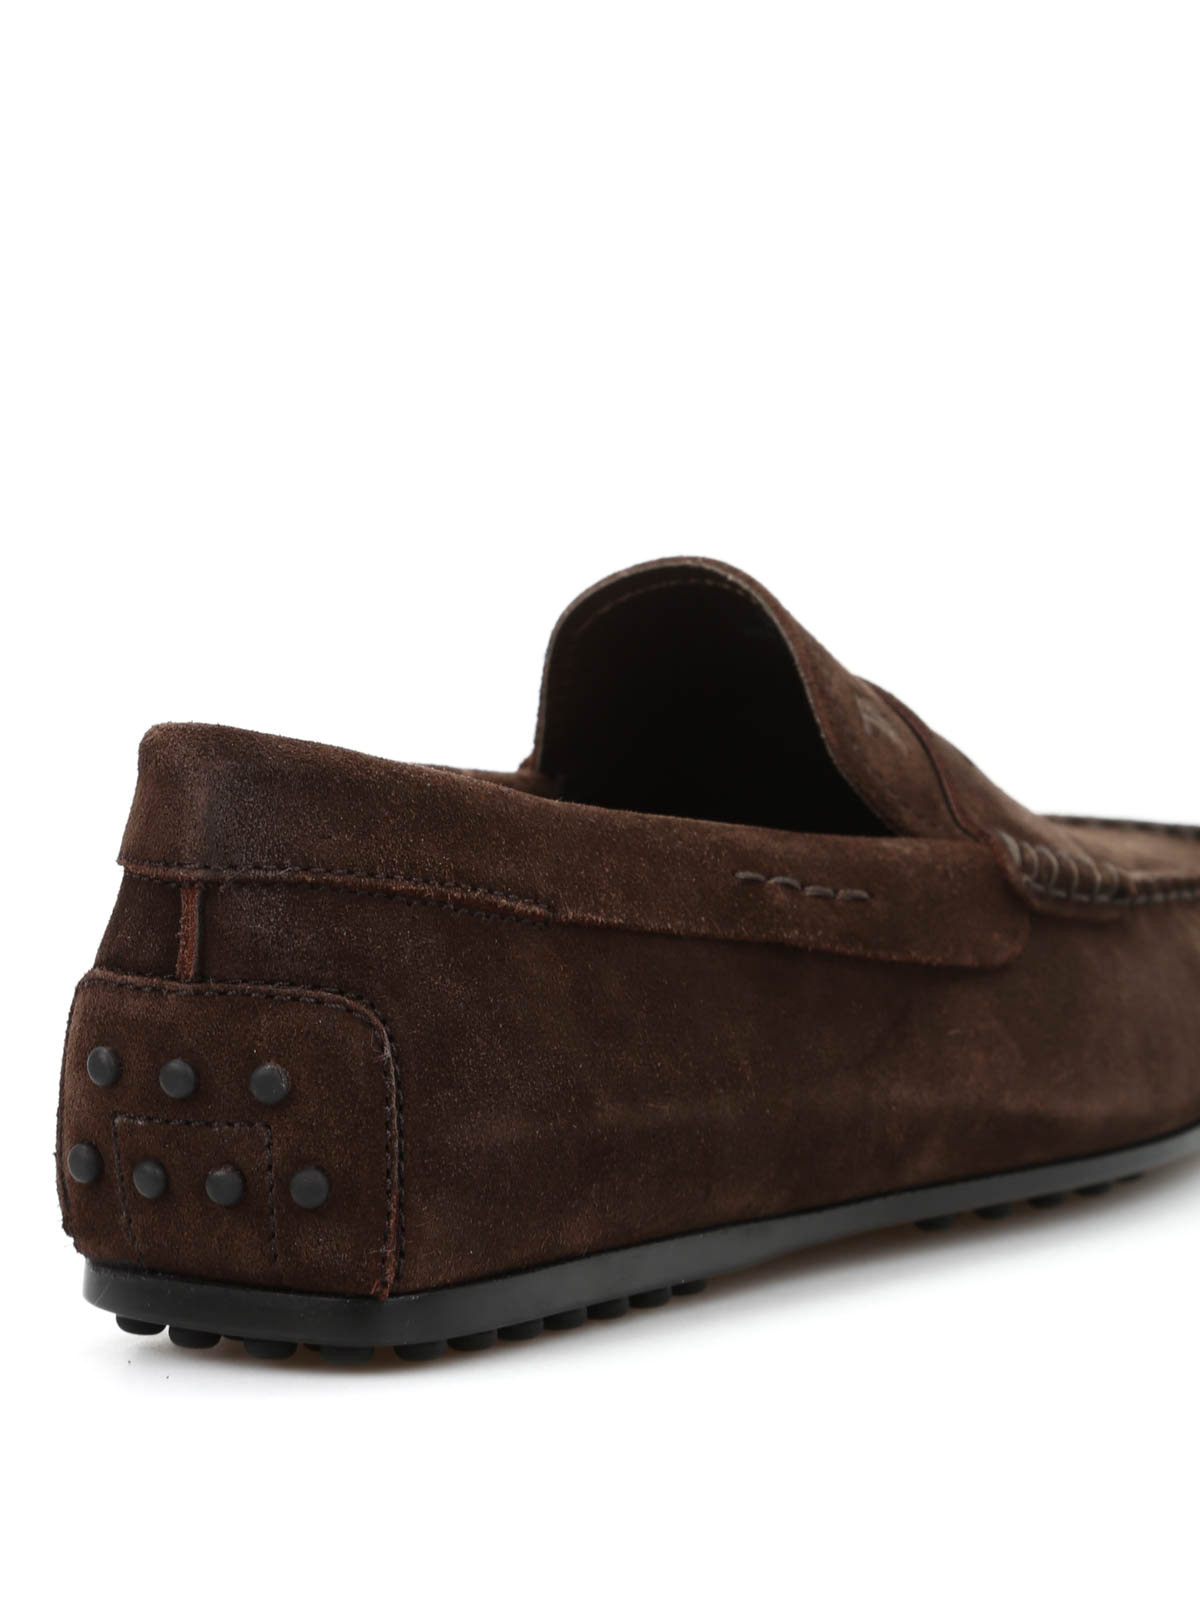 ee360aad4d1 Tod S - City Gommino suede loafers - Loafers   Slippers ...